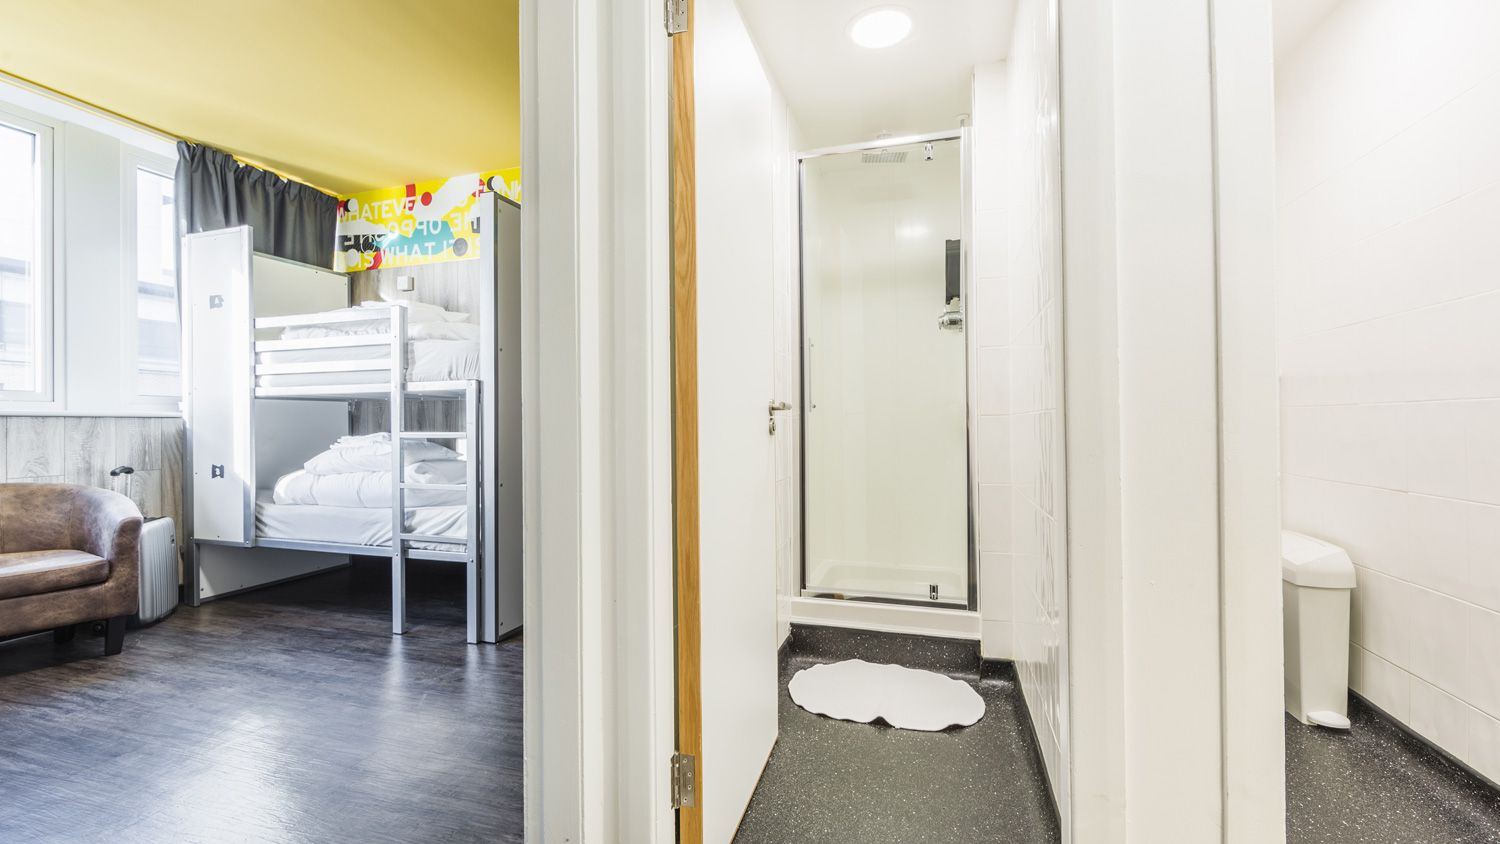 4 Person Private Room at Euro Hostel Glasgow